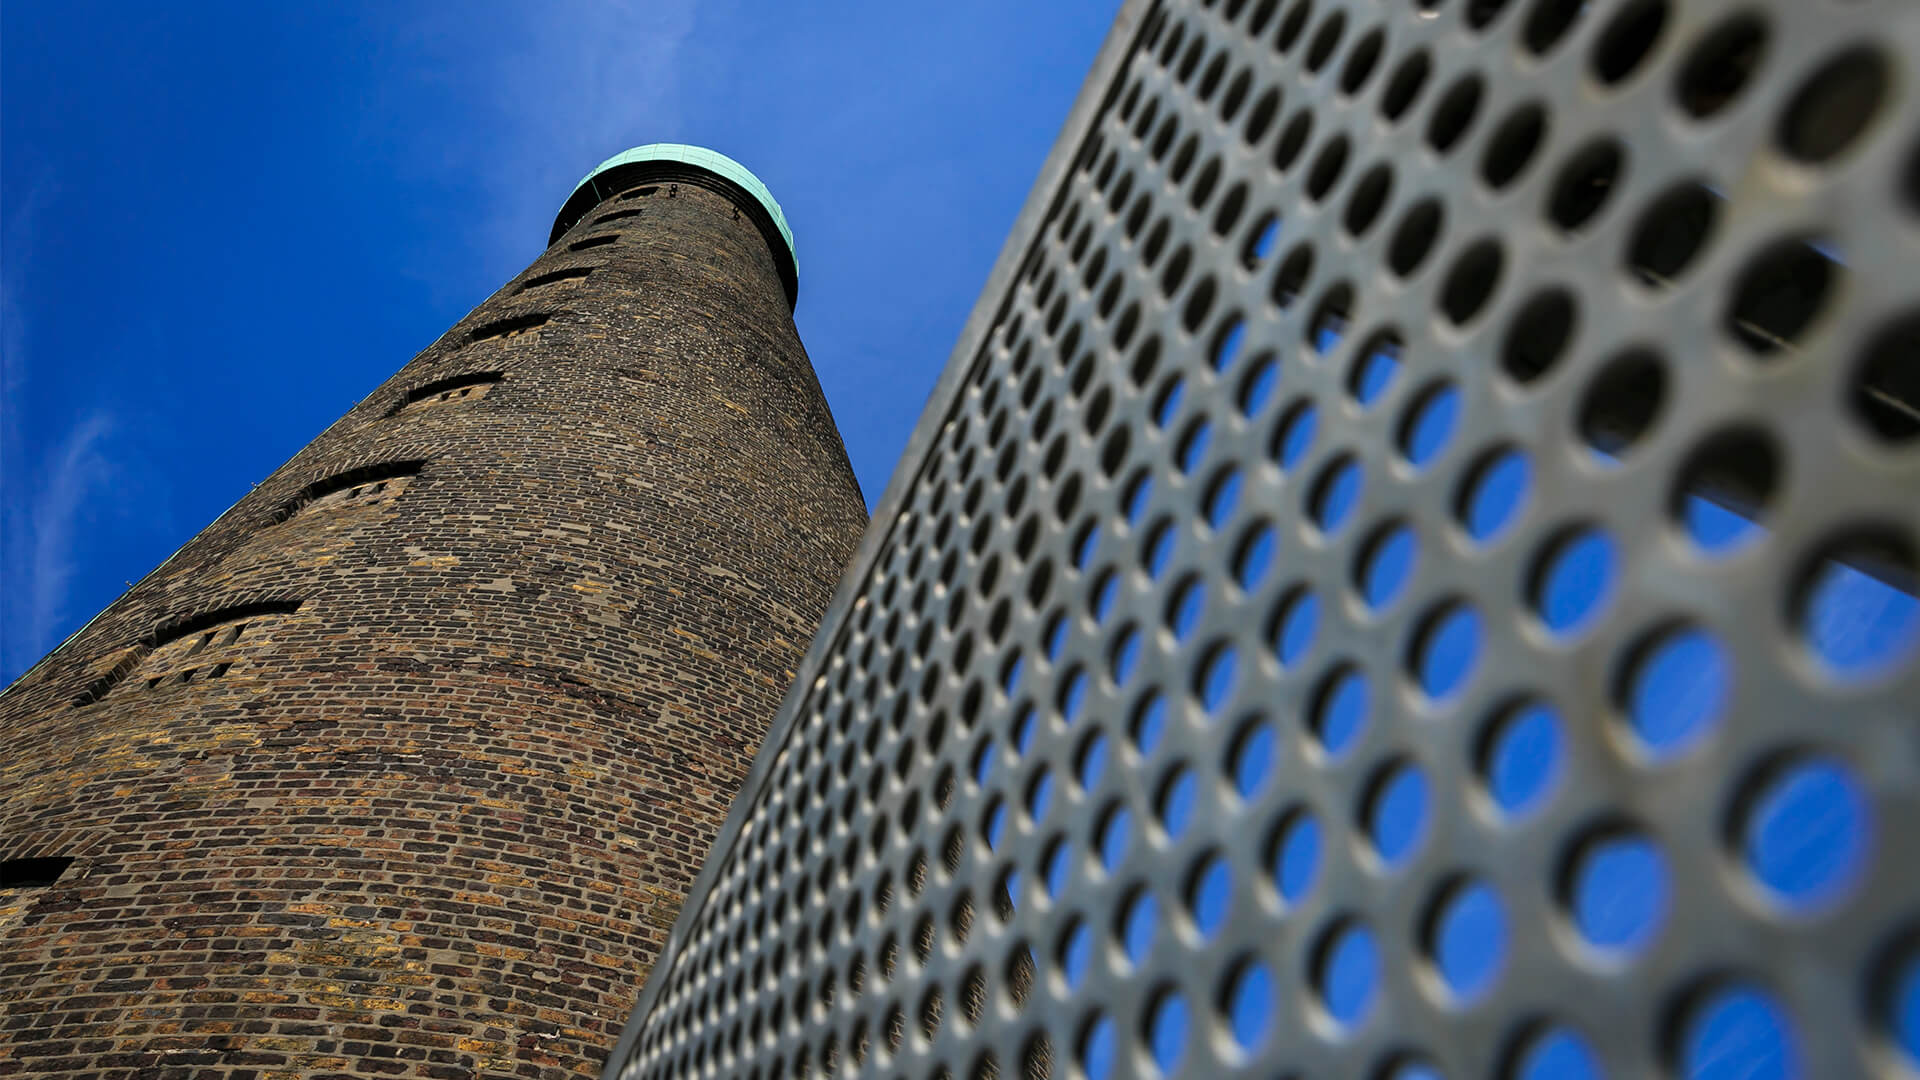 http://St%20Patrick's%20Tower